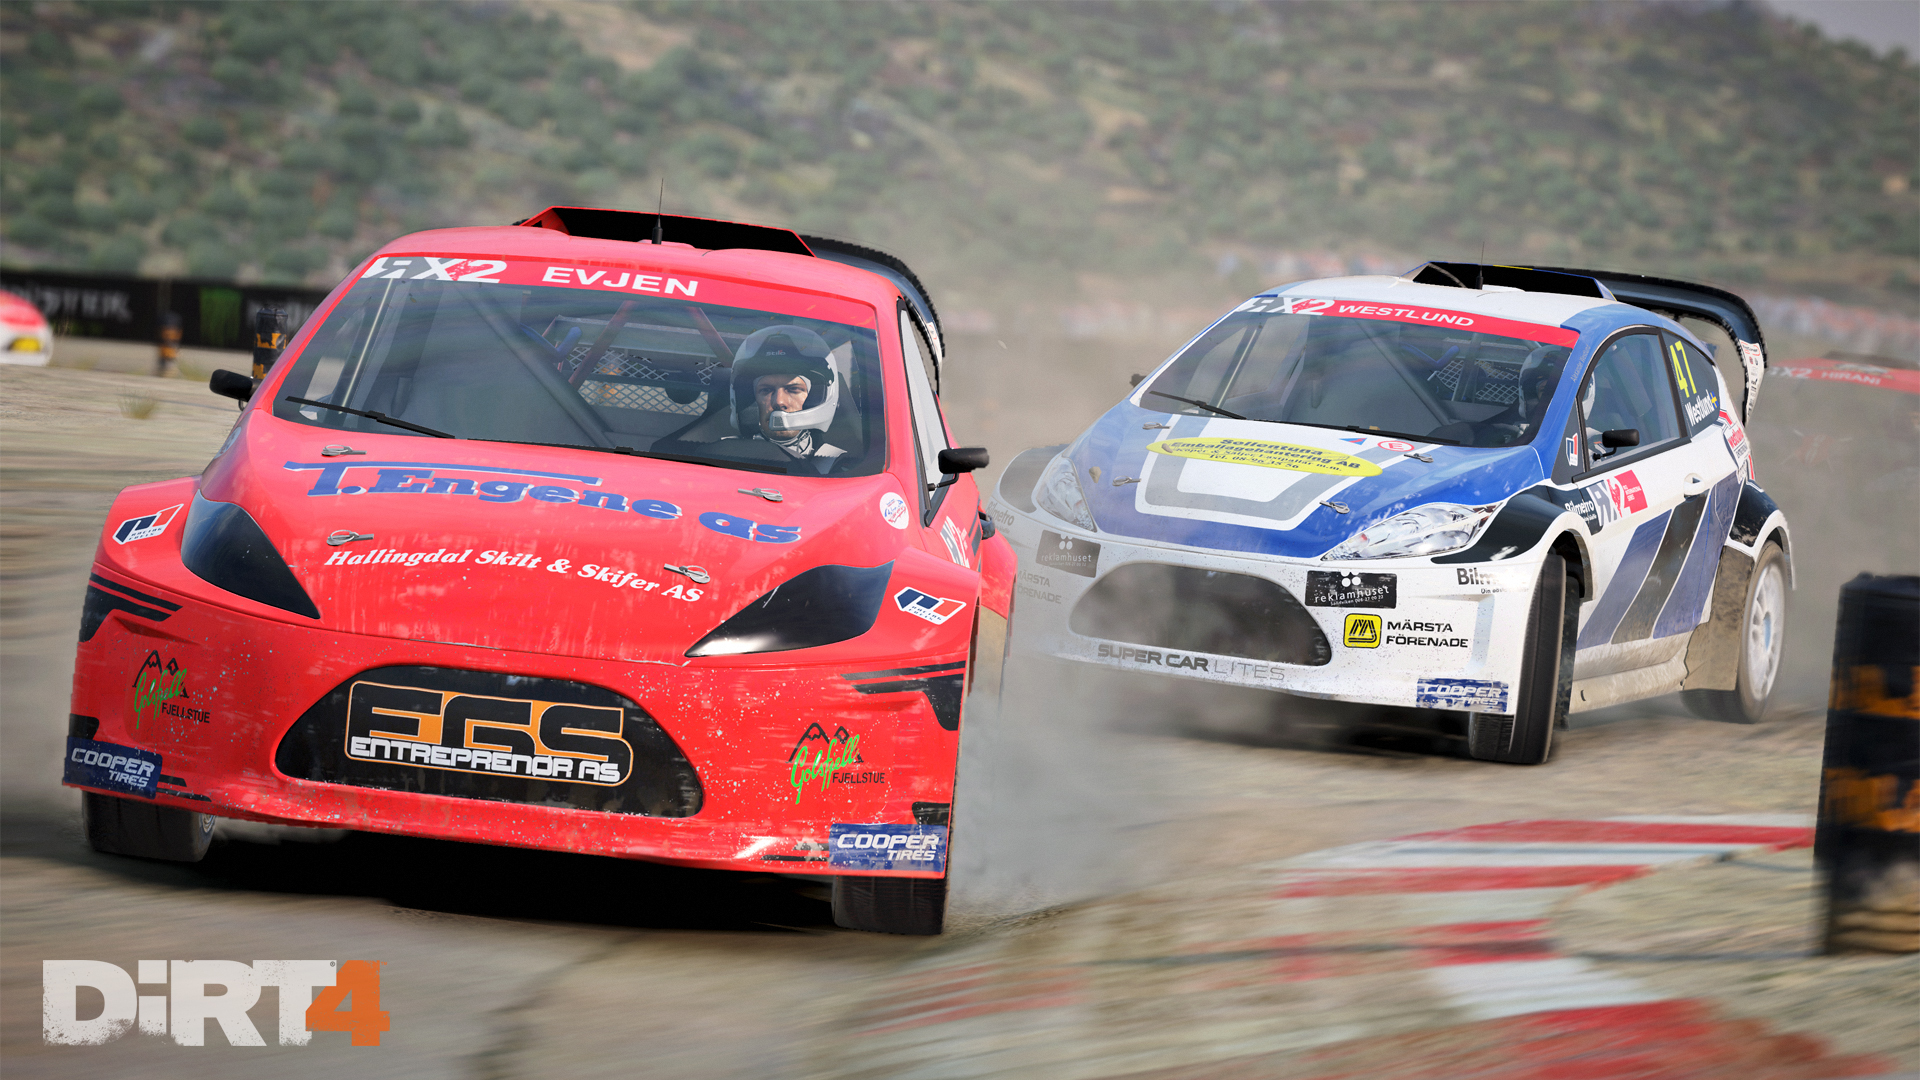 DiRT4 - screen - RX - Montalegre - front dirt